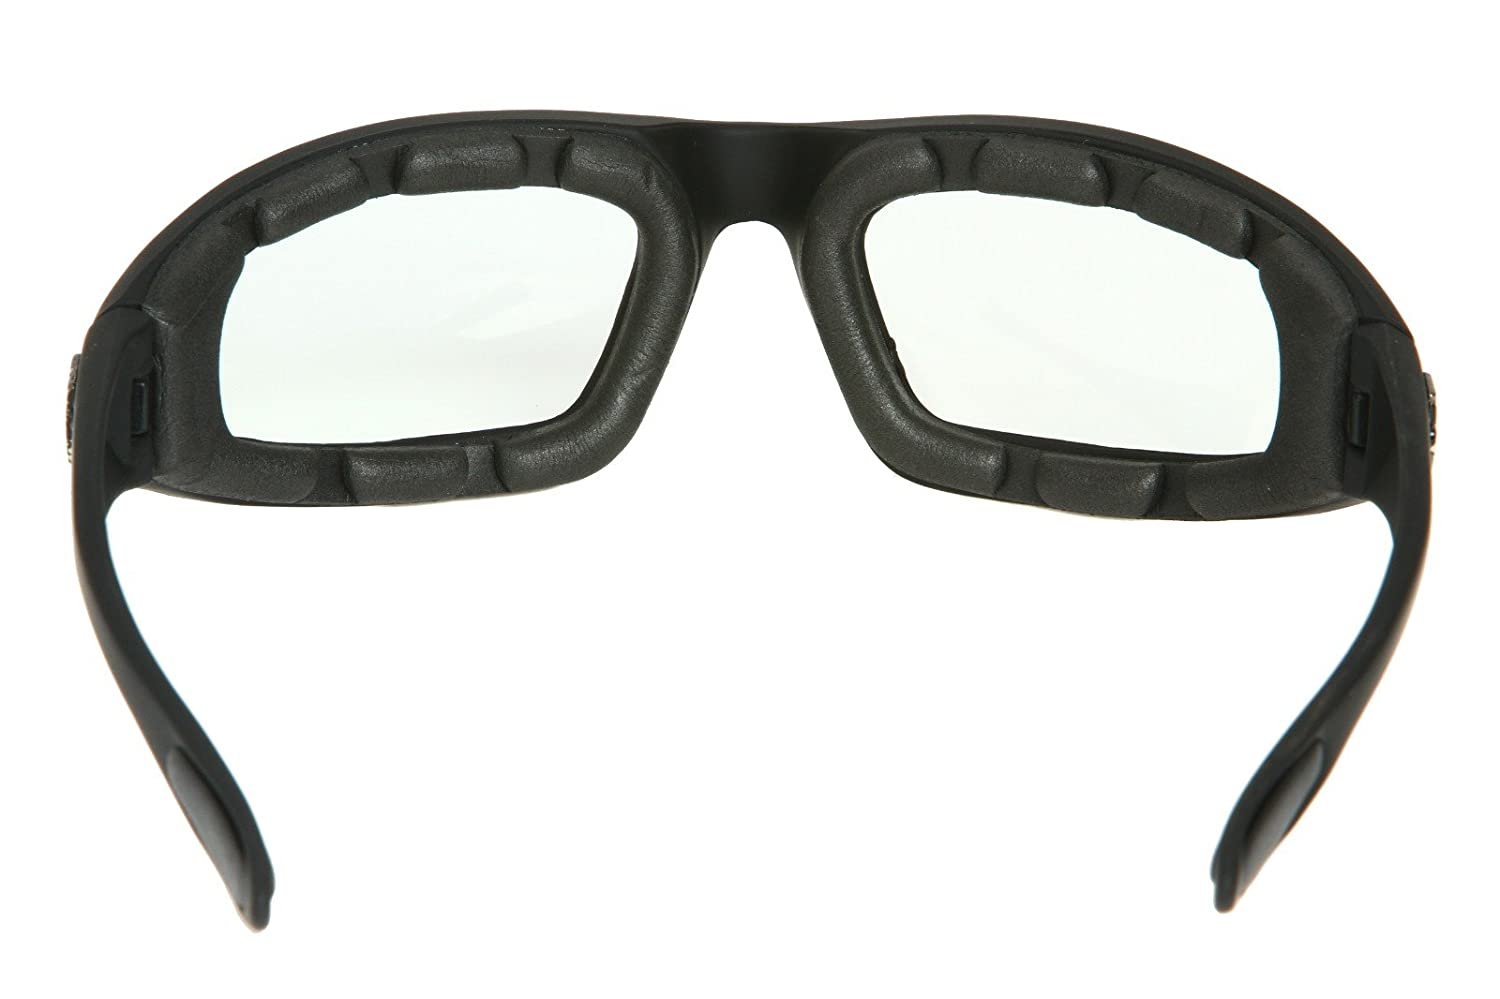 ce3b8591c3 Amazon.com  Chopper Men s Wind Resistant Motorcycle Wrap 65mm Clear Lens  Sunglasses  Clothing